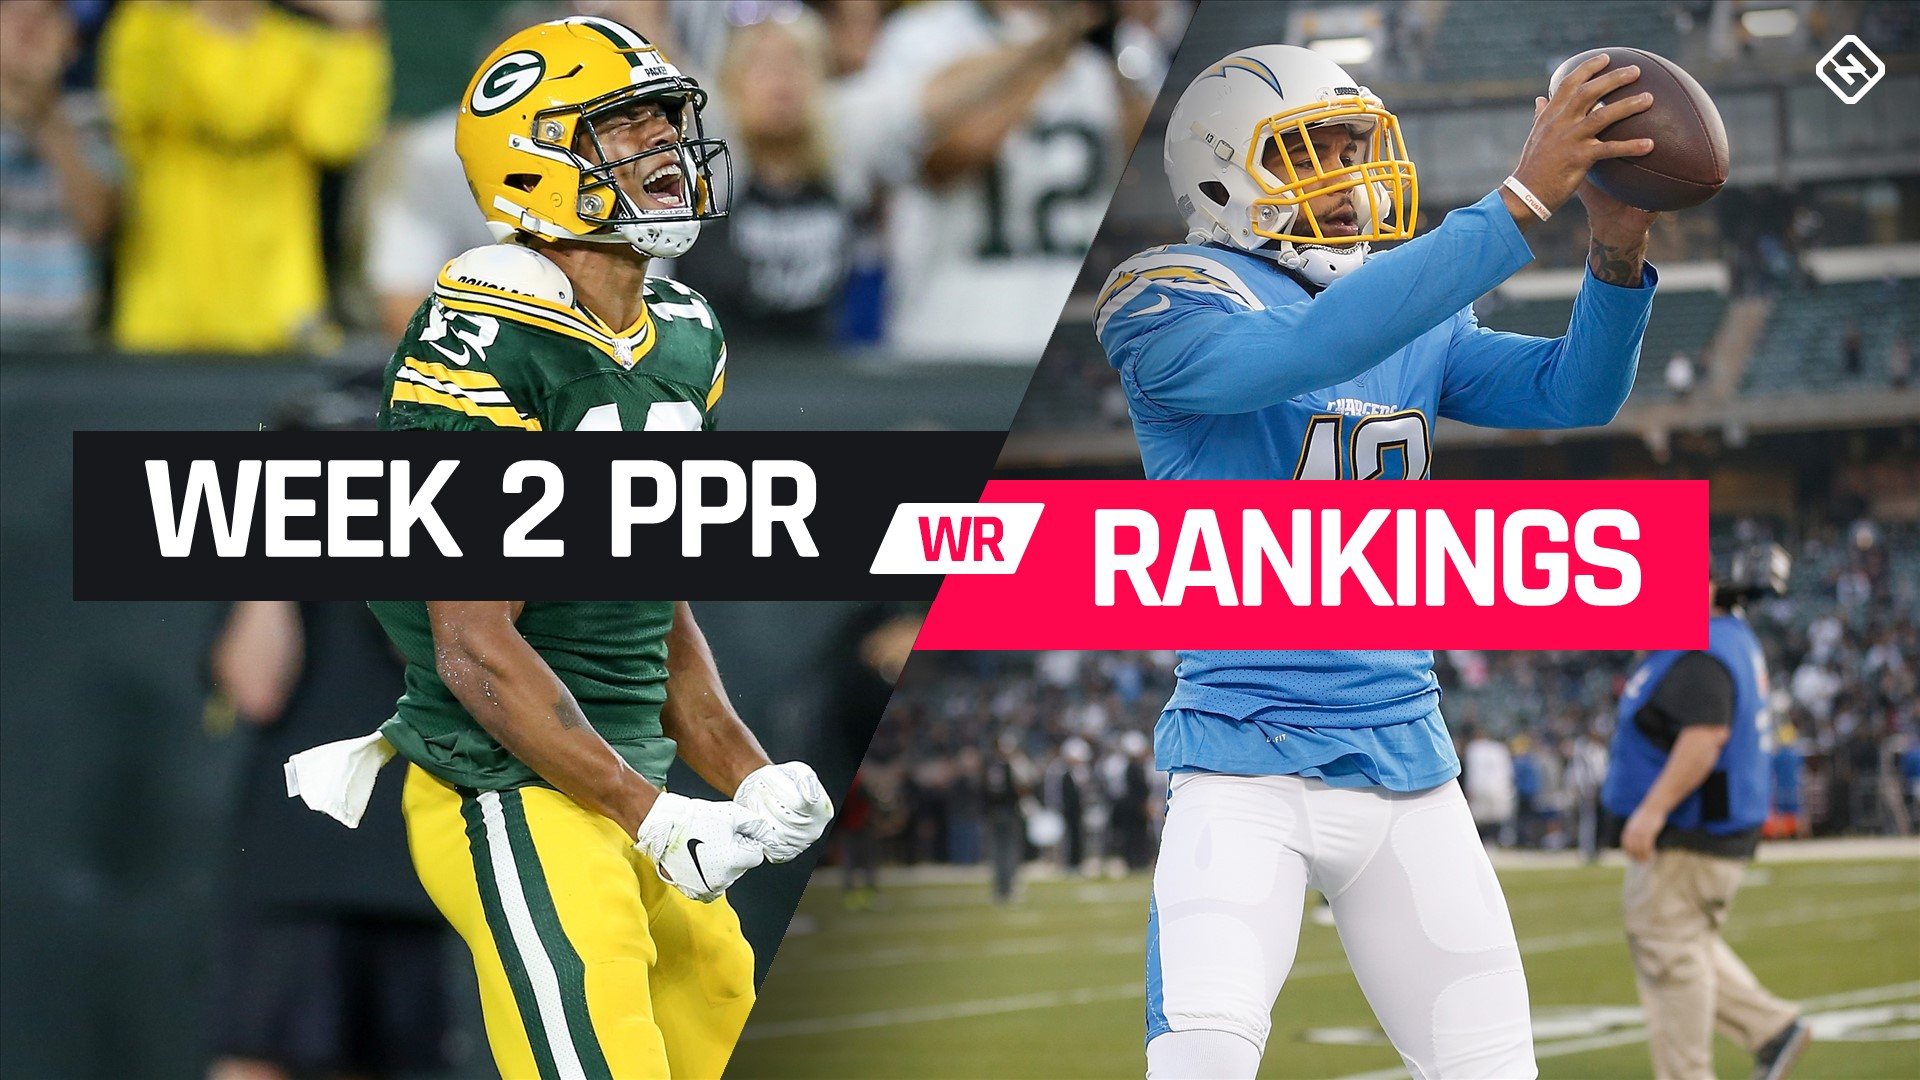 https://images.daznservices.com/di/library/sporting_news/2b/db/week2-ppr-wr-rankings-ftr_1ol8ofednpqii12lwgte8qyhb1.jpg?t=1991180036&w=%7Bwidth%7D&quality=80